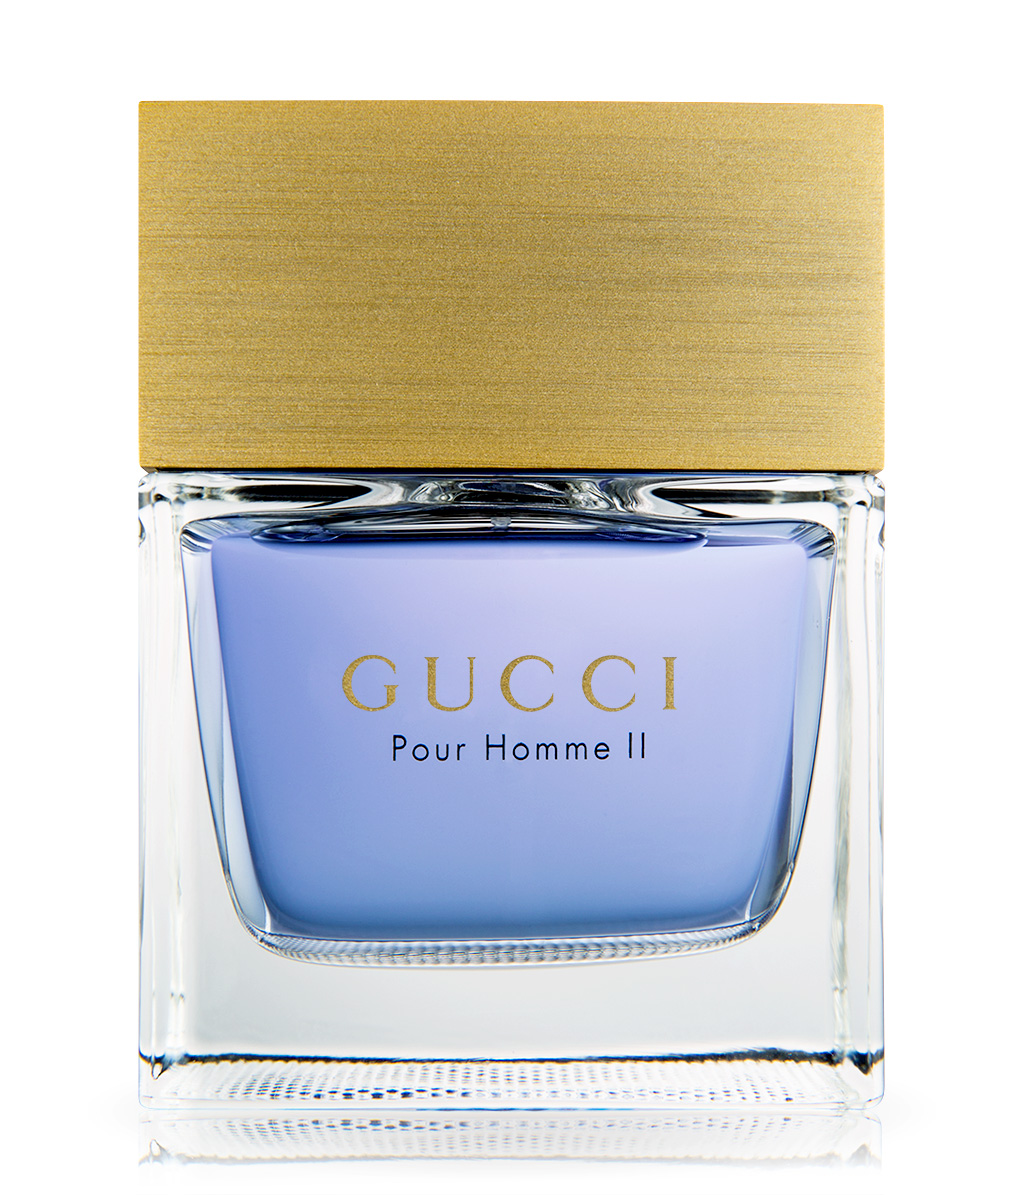 Gucci Pour Homme II  3